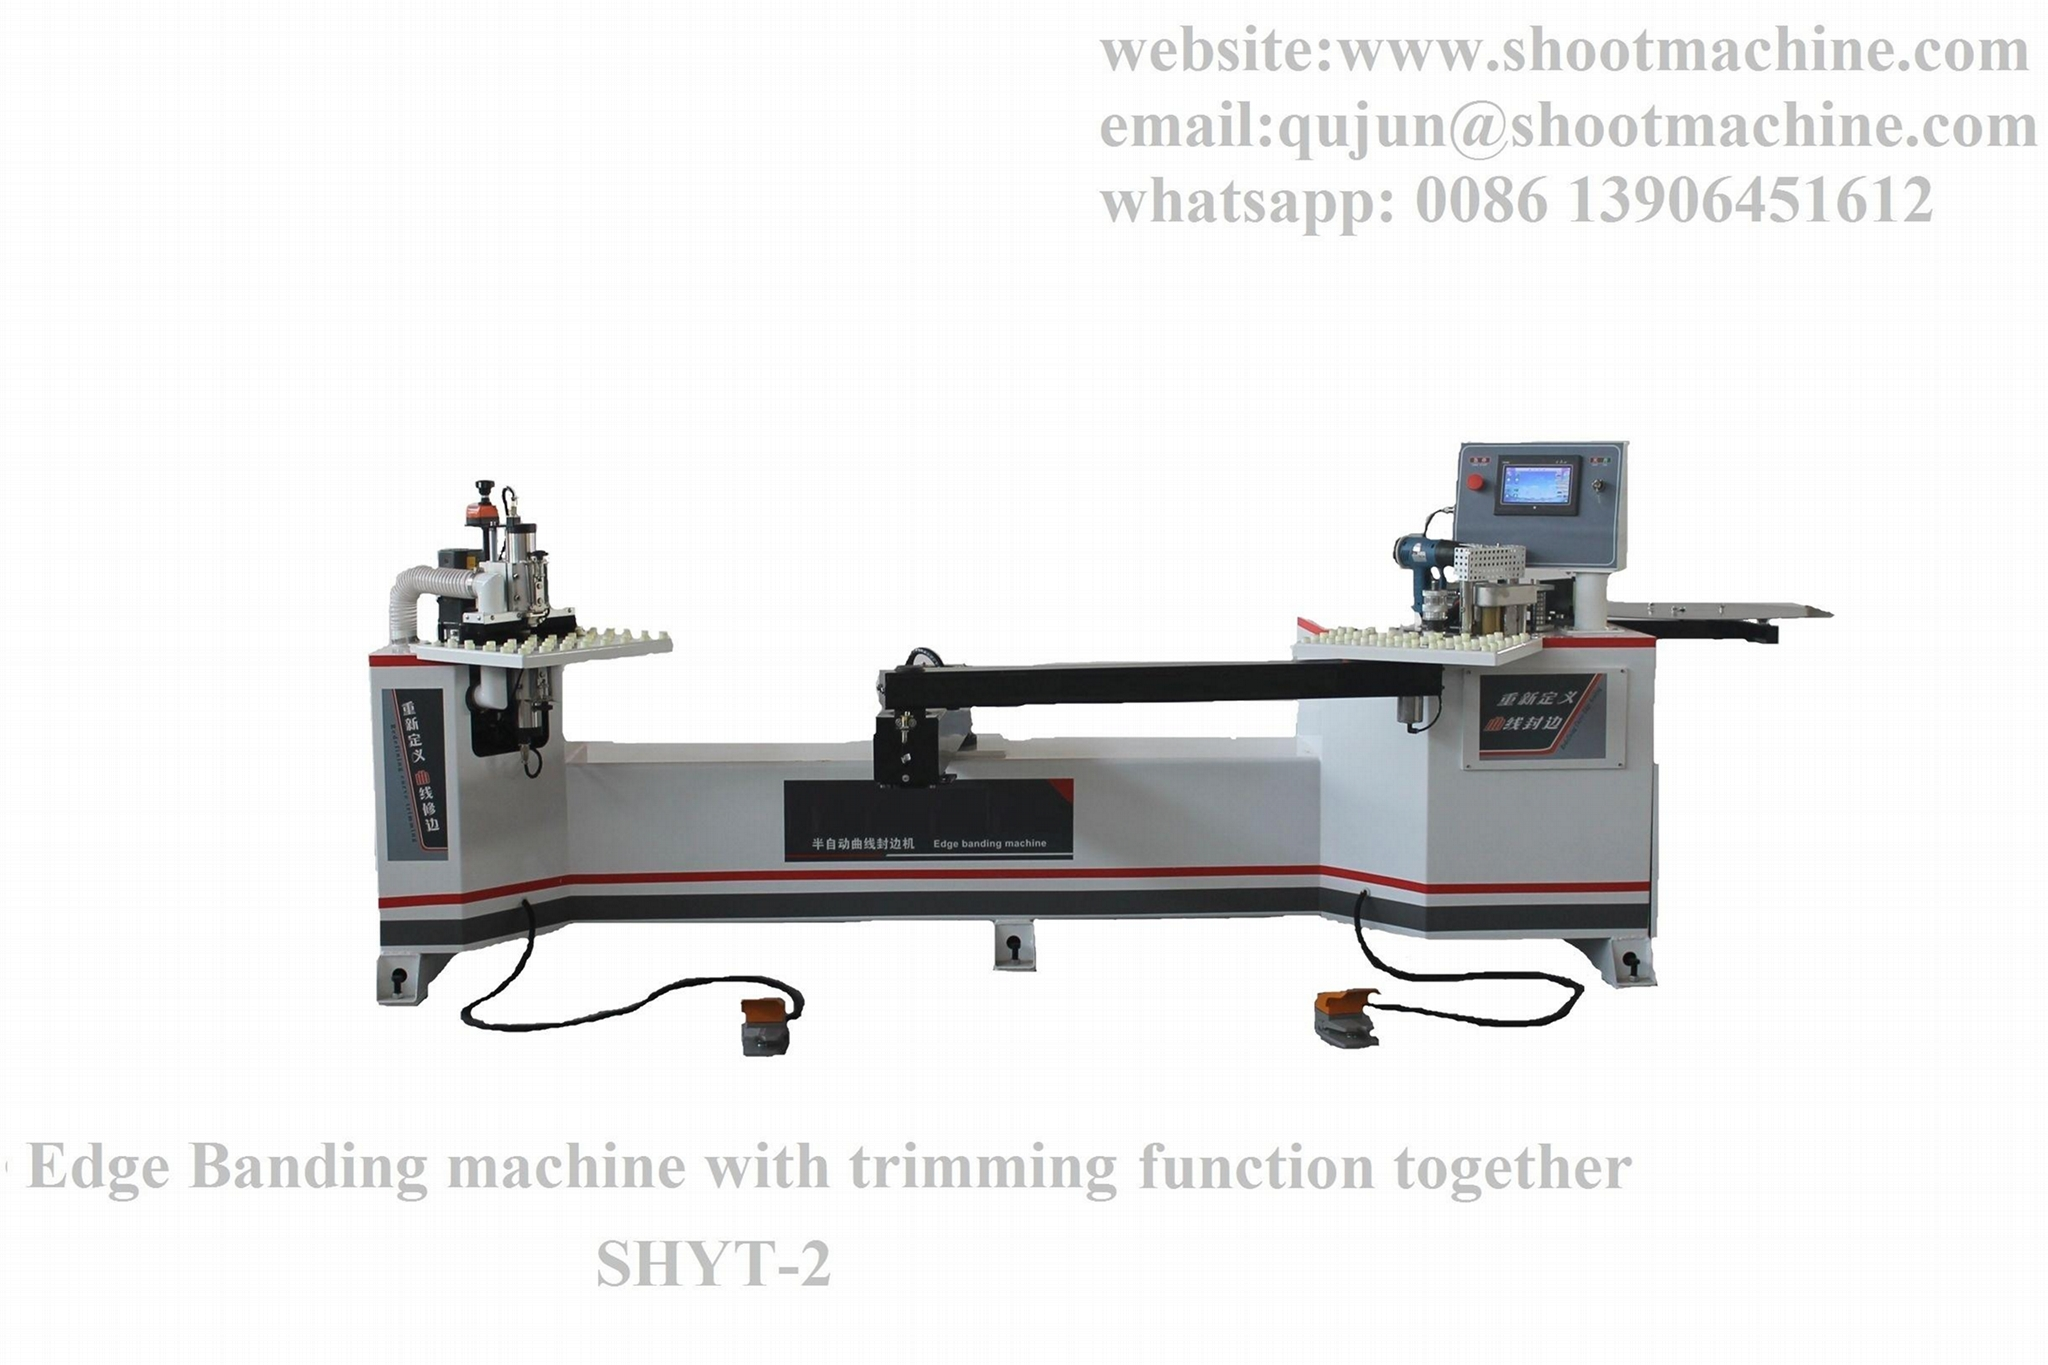 Edge Banding Machine With Trimming Function Together,SHYT-2